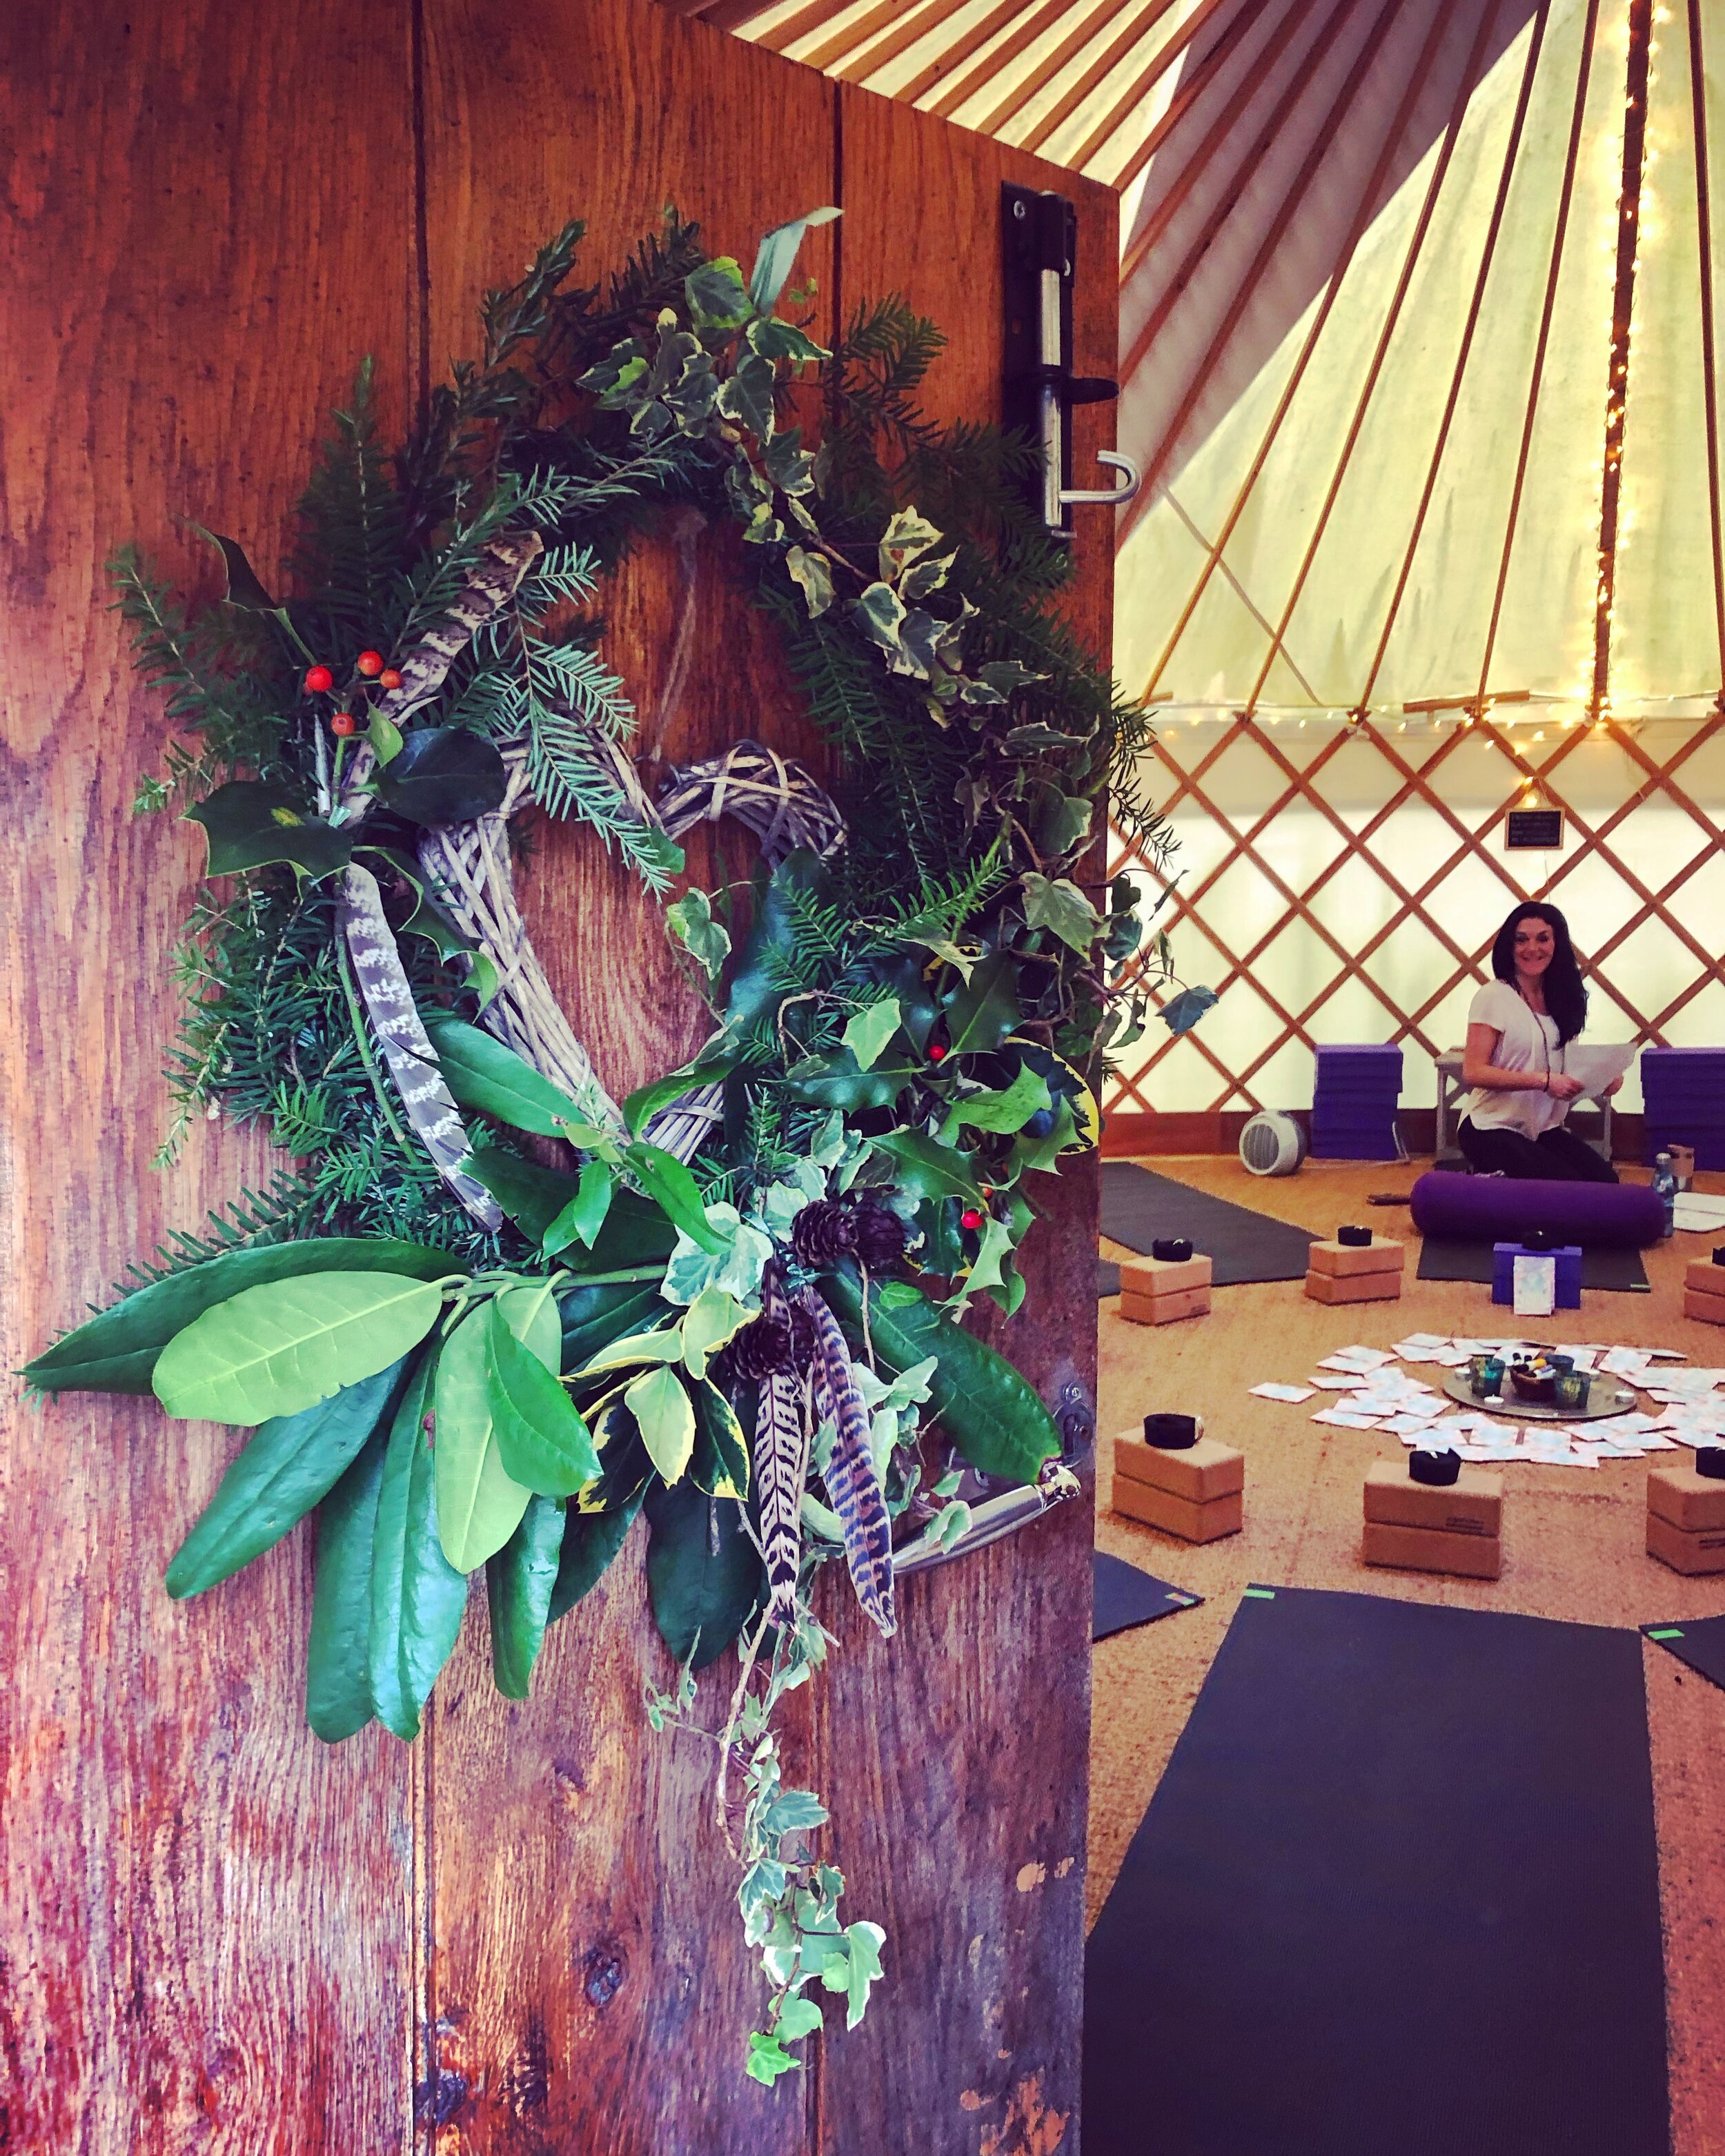 Come in from the cold, leave the chaos behind and find calm in our cosy Winter Yurt